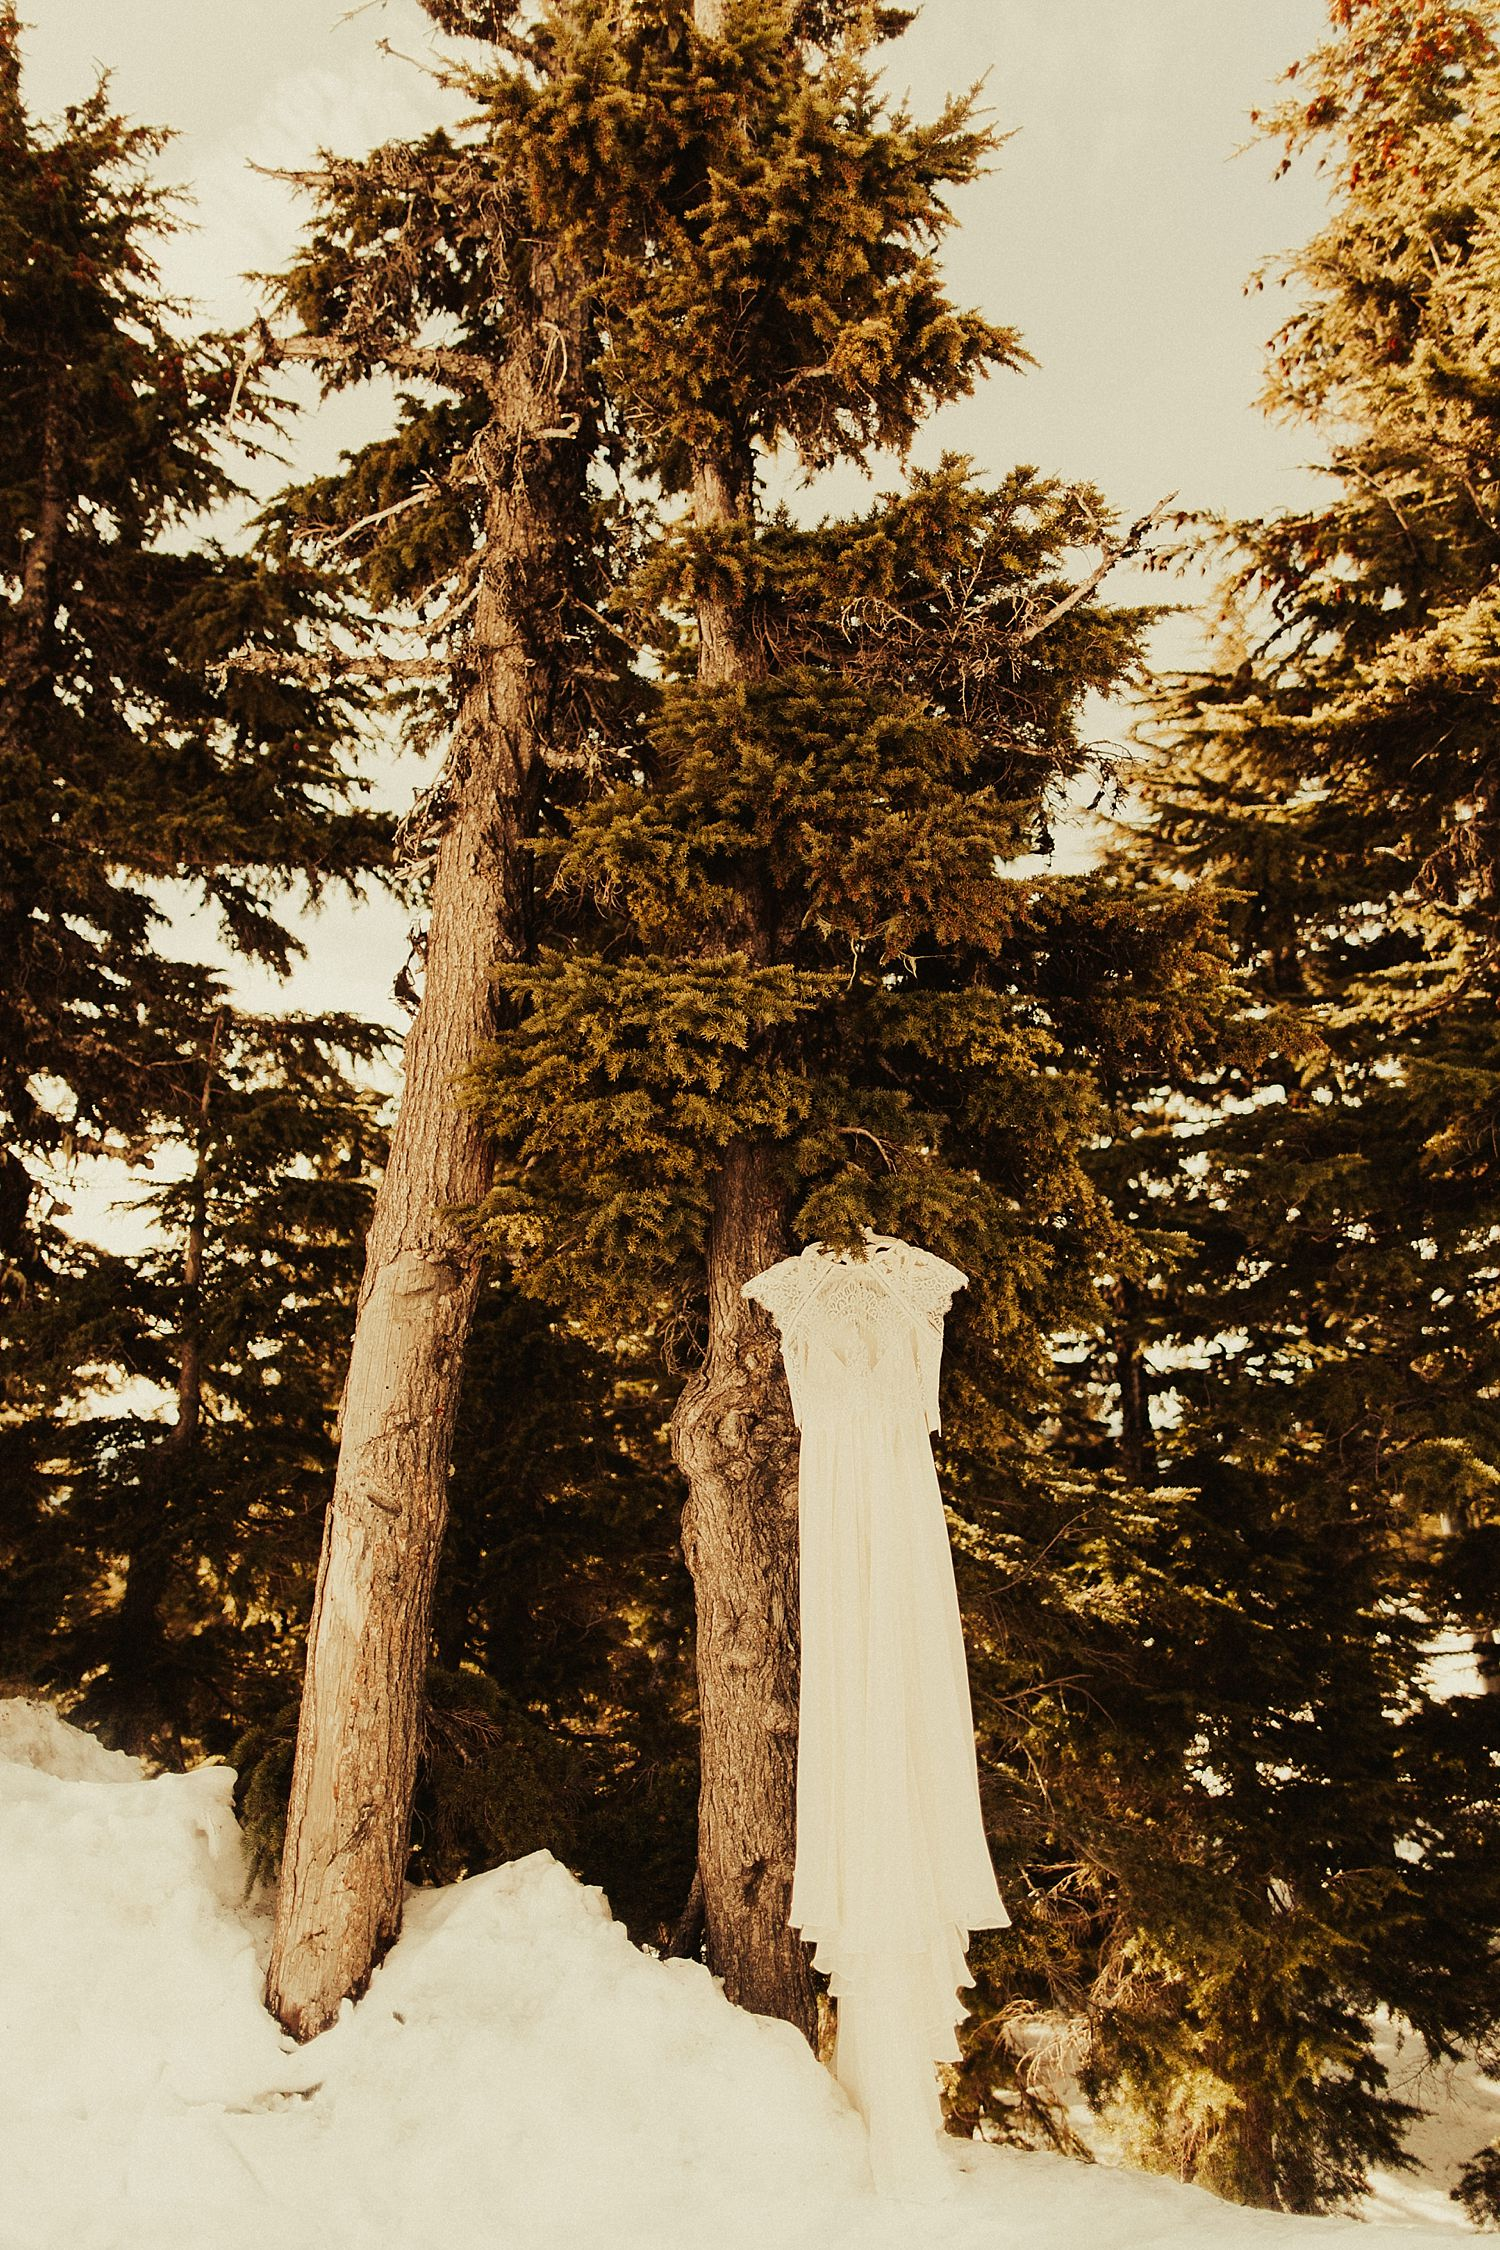 mt-hood-timberline-lodge-wedding_1157.jpg